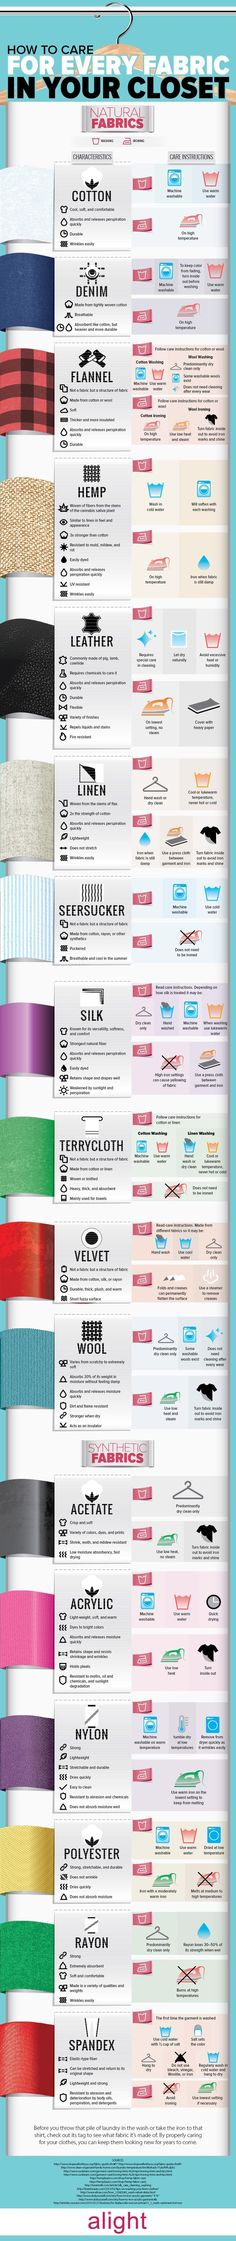 Get EASY Tips On How To Care For Every Fabric In Your Closet - this is a great way to preserve your clothes, which also saves you money!